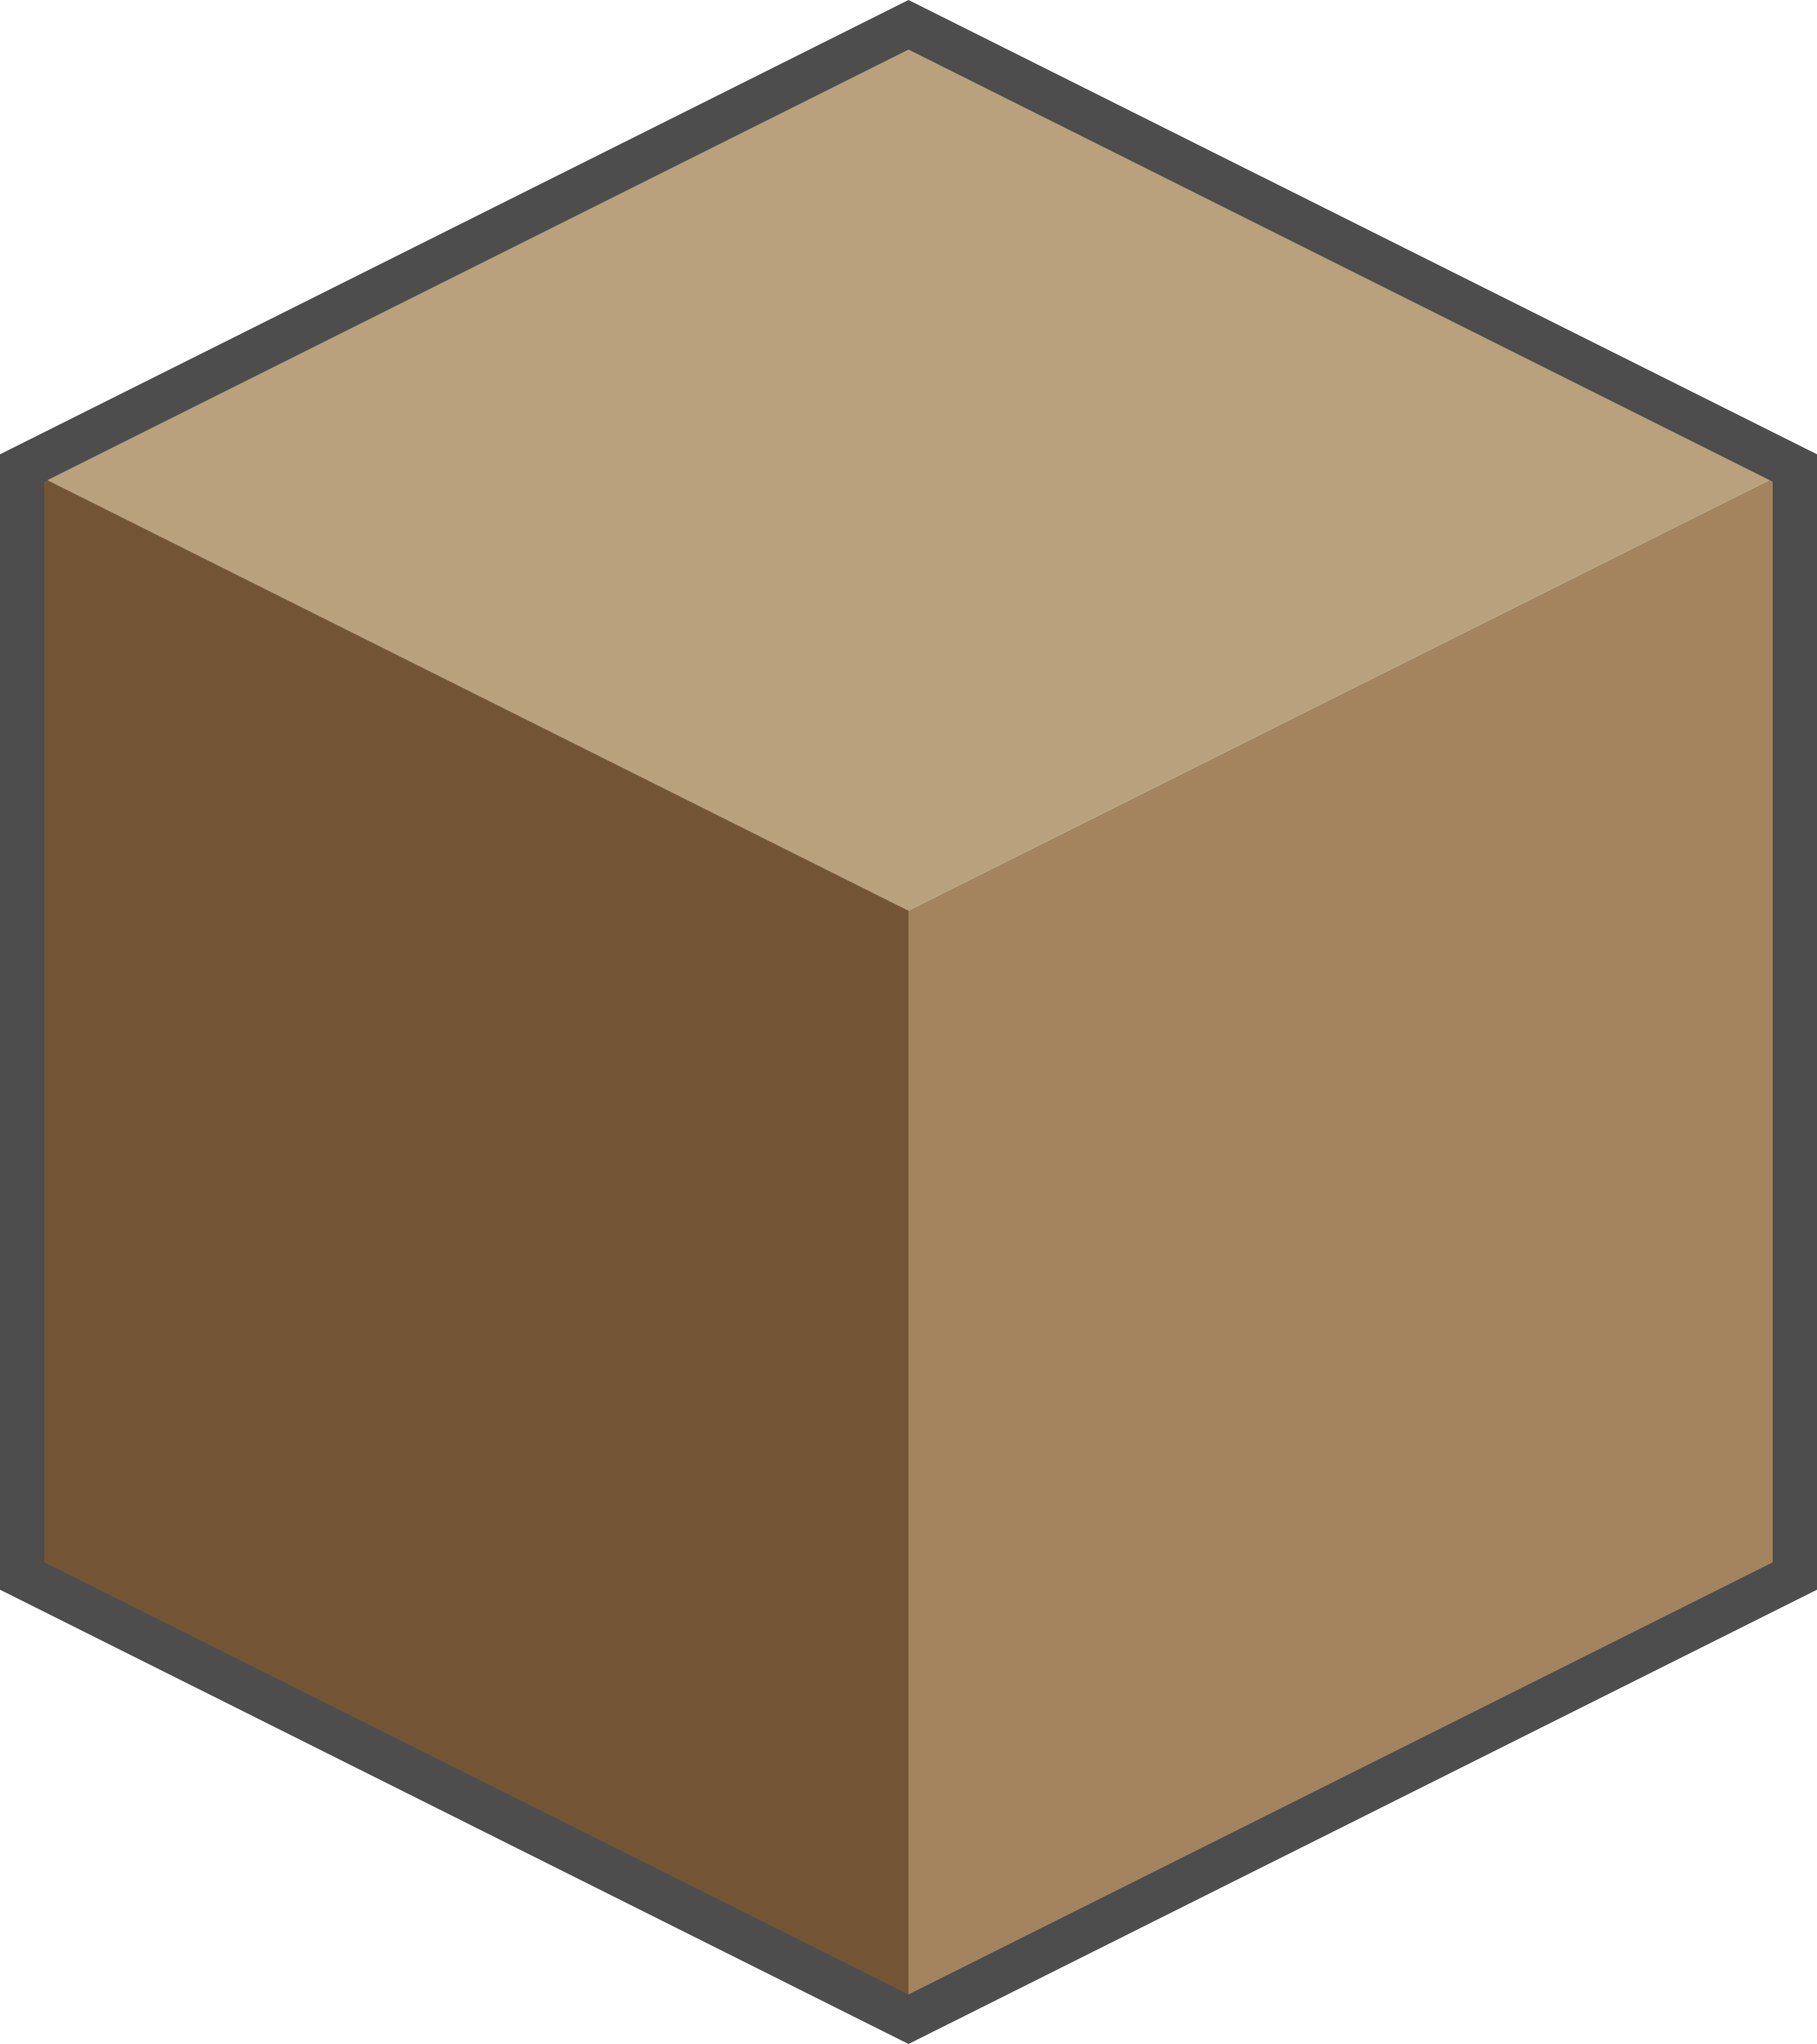 Images of Cube | 2134x2400